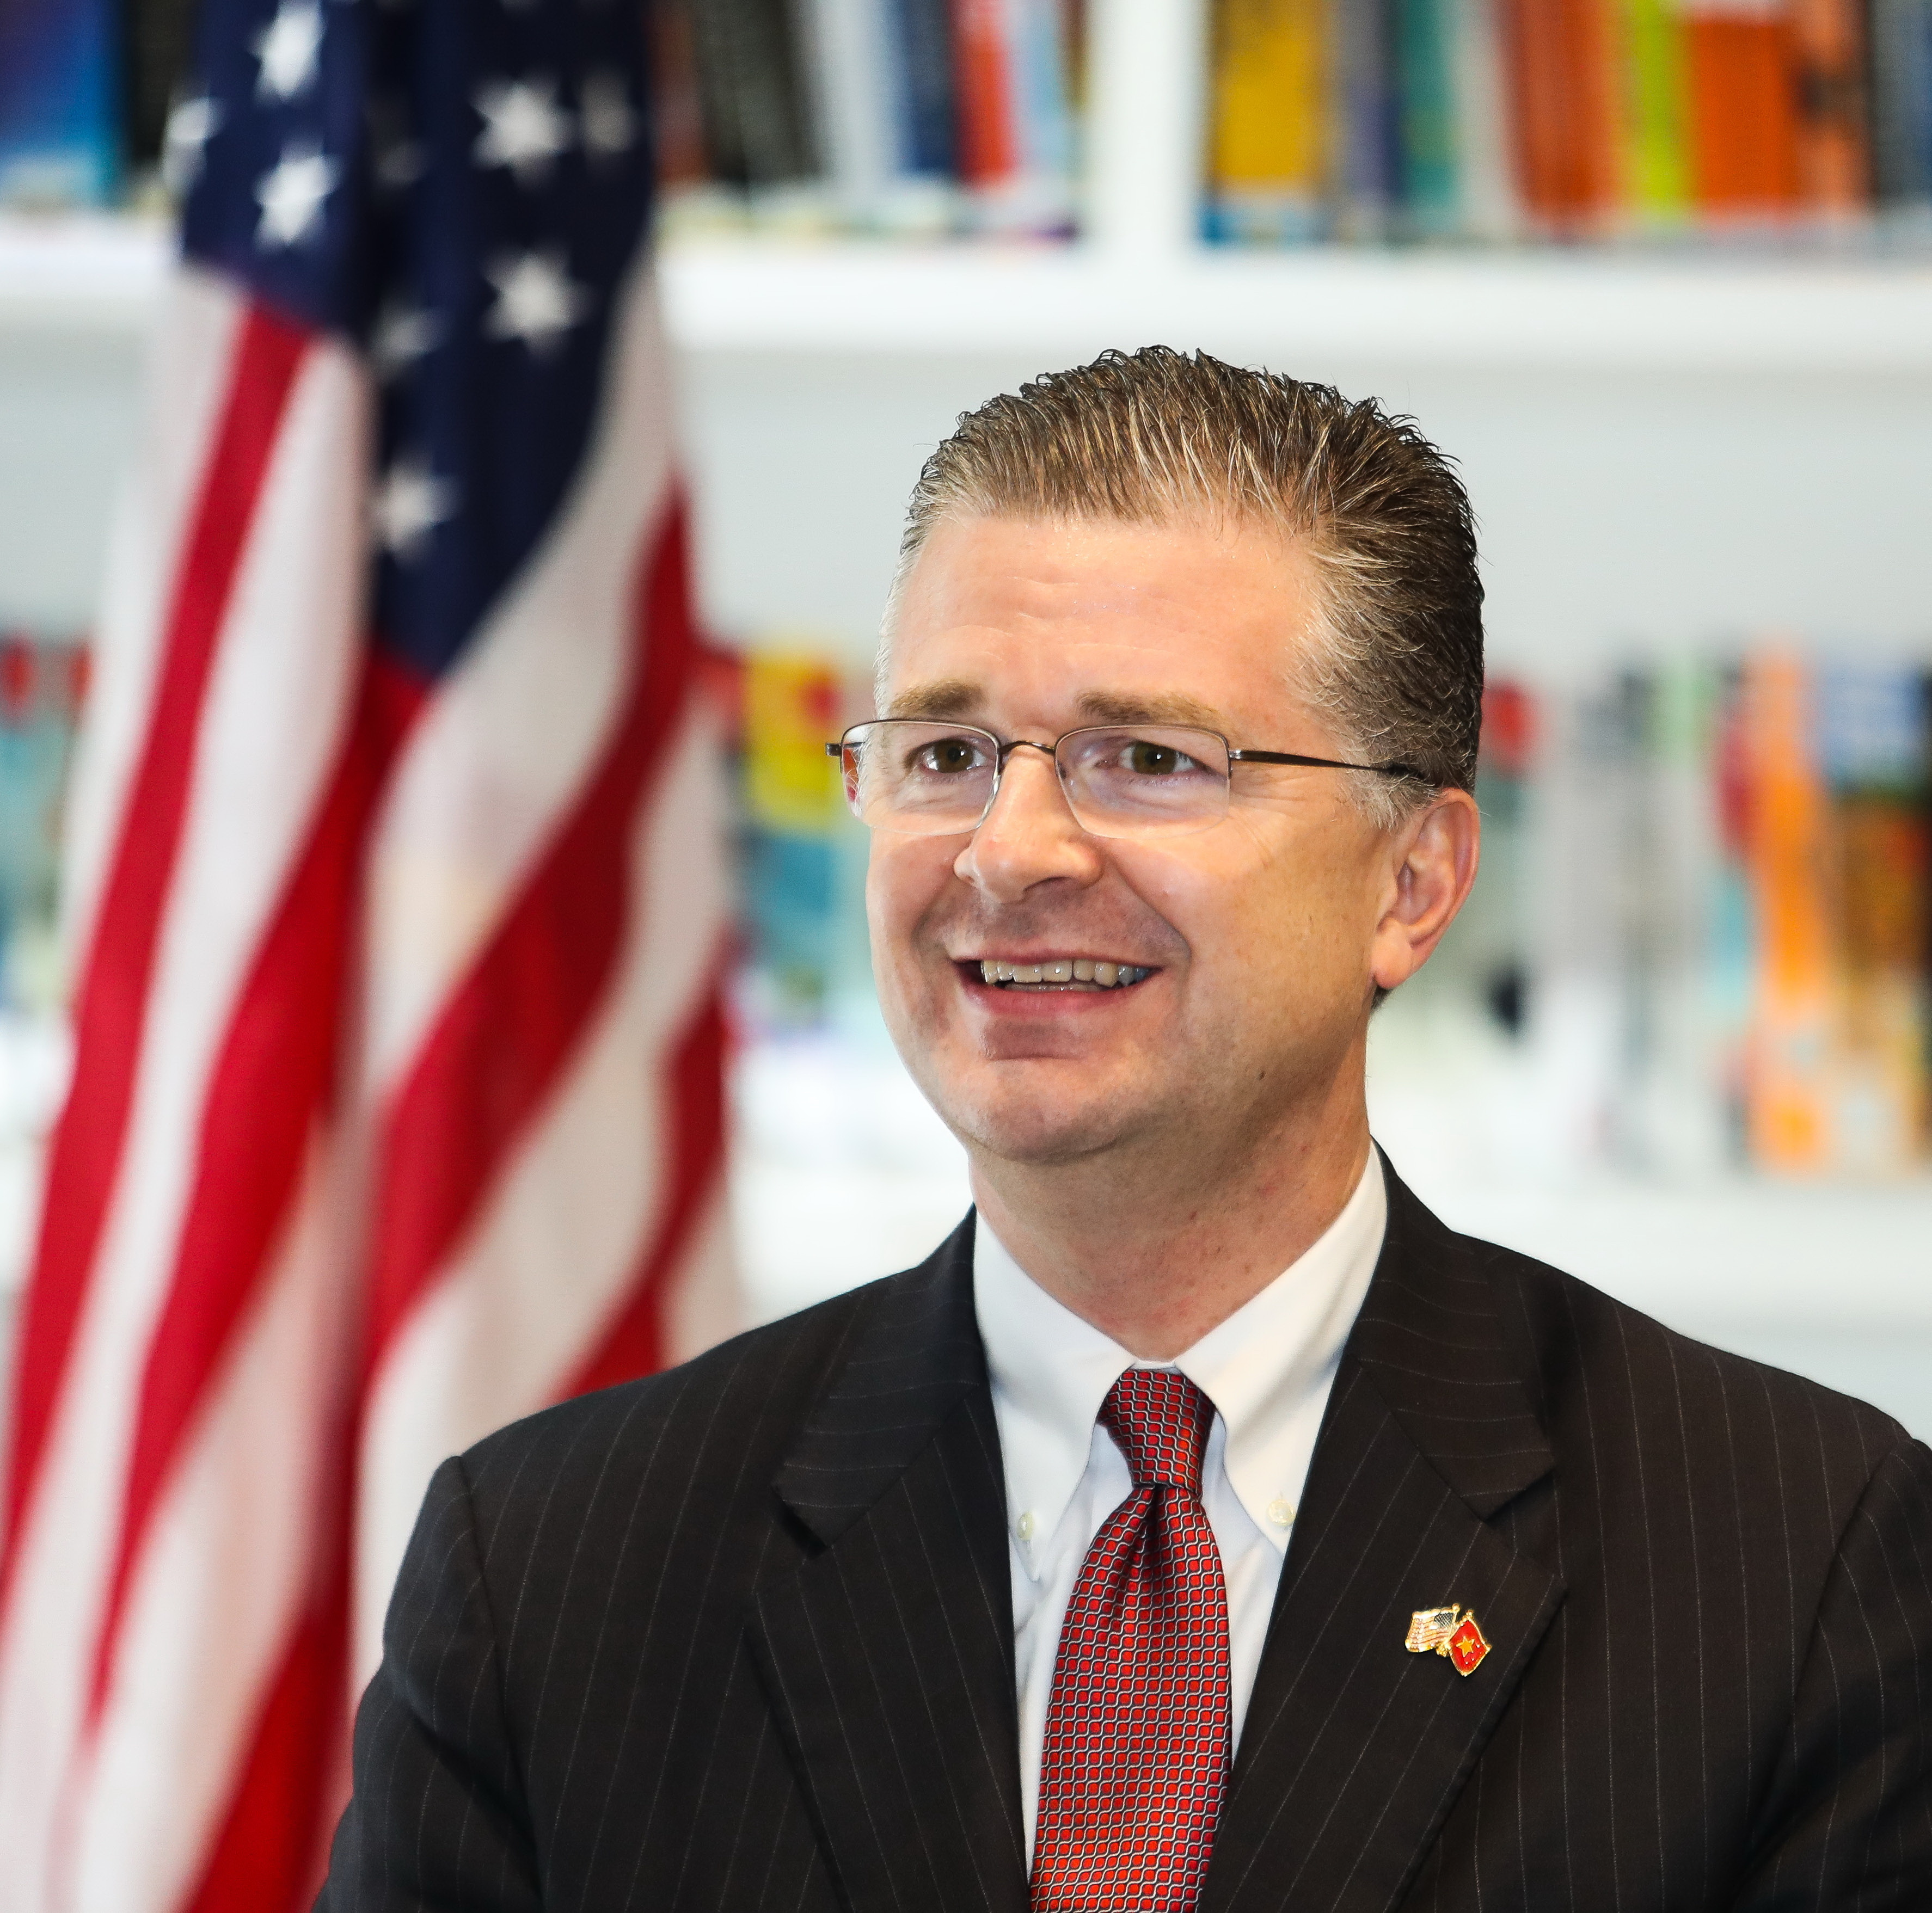 Exclusive interview: US ambassador on cooperation, trade, aircraft carrier visit to Vietnam